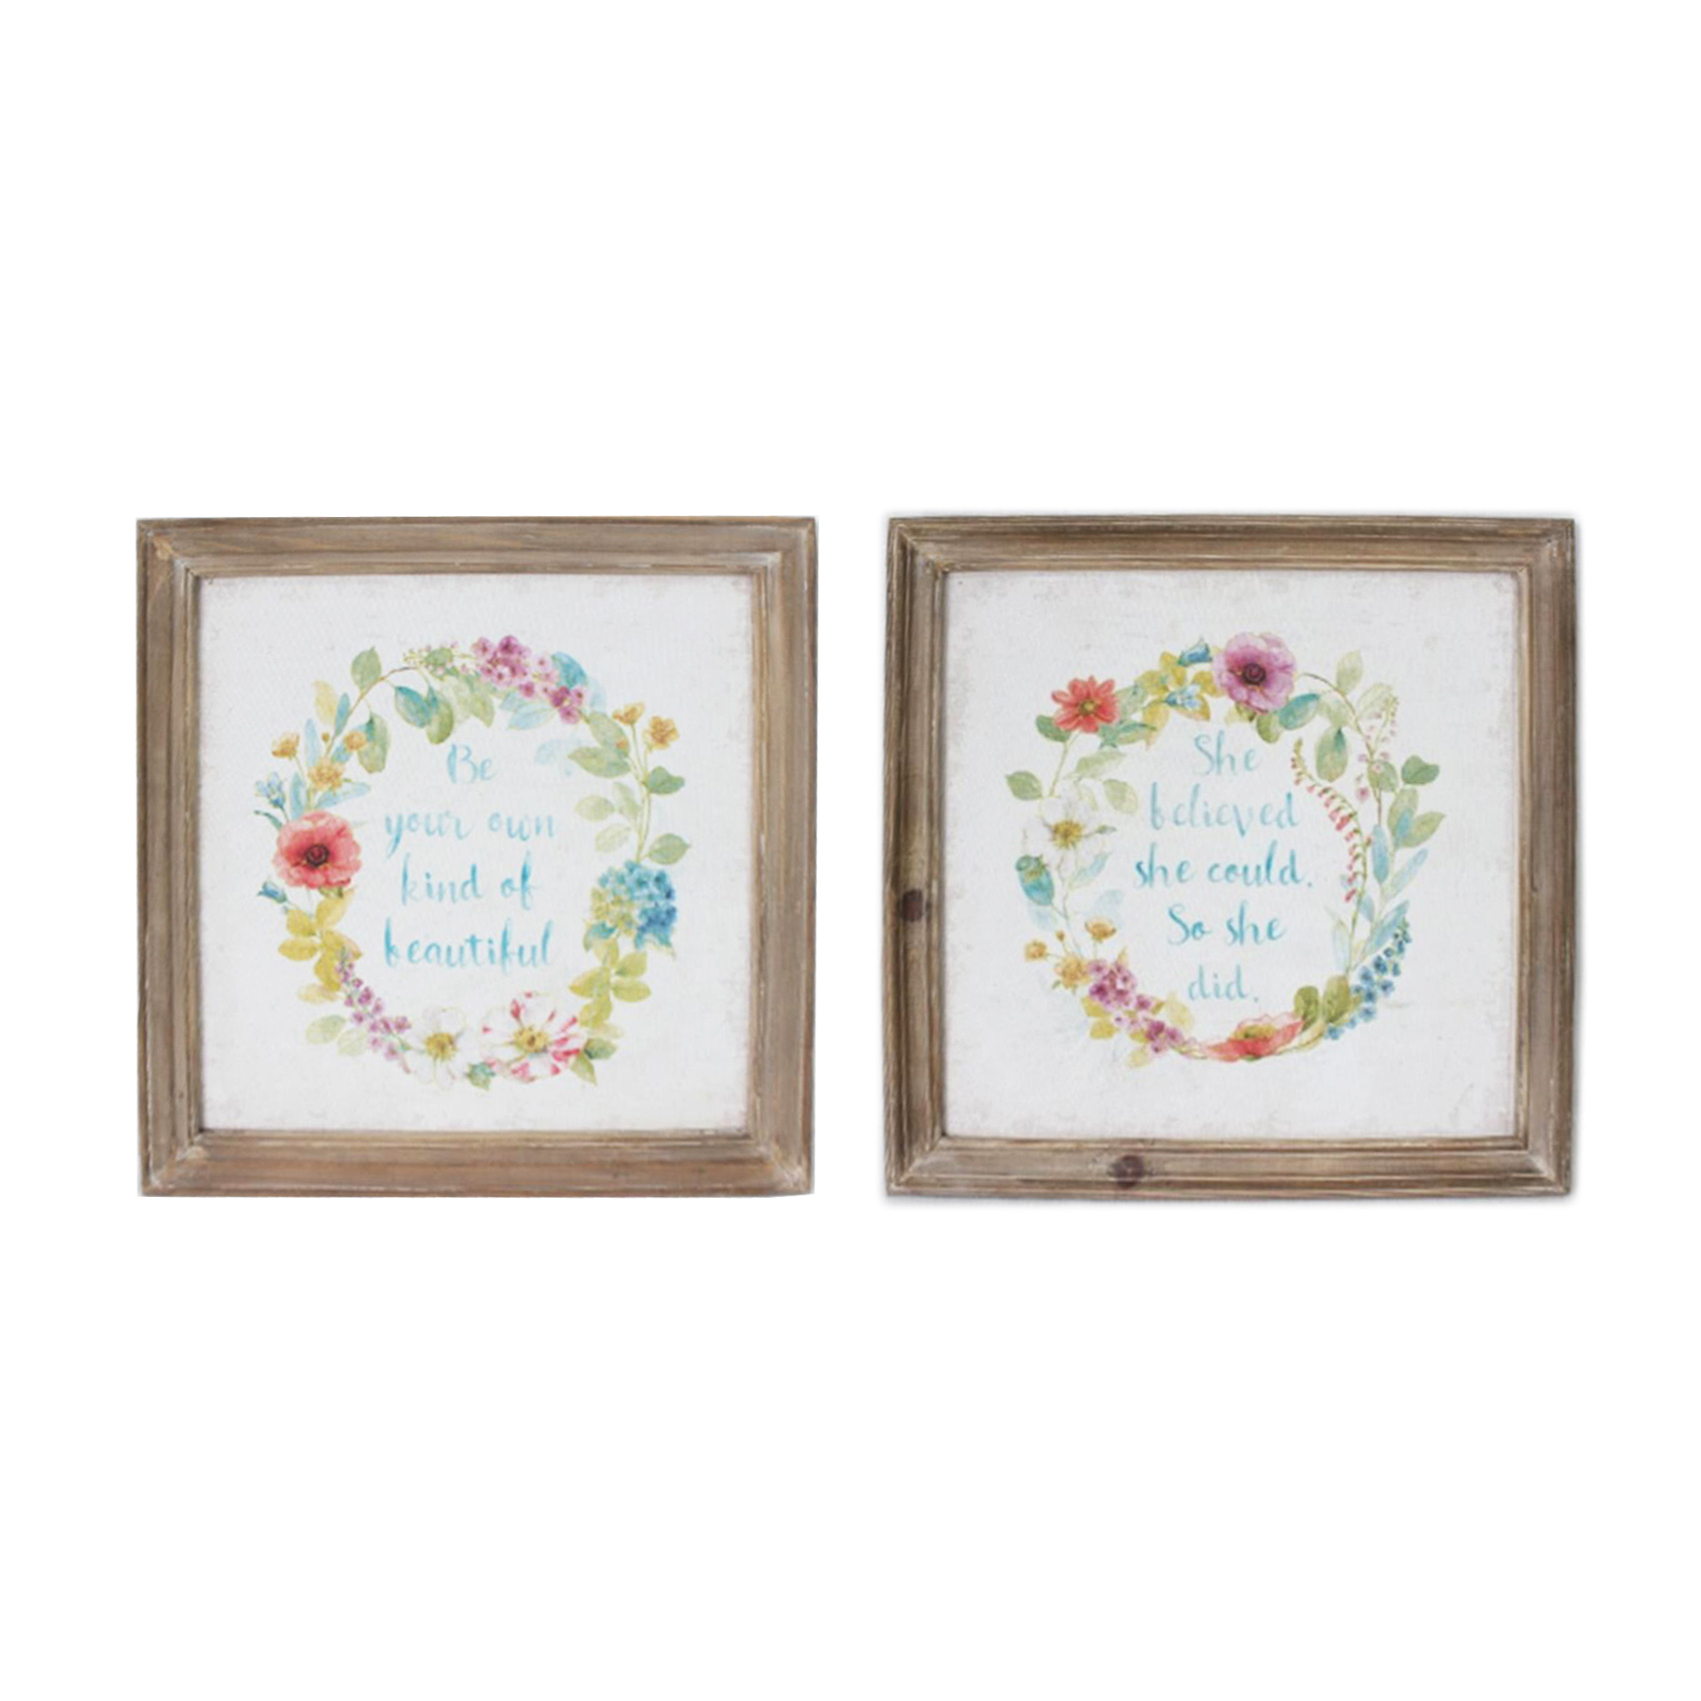 Details About 2X Shabby Chic Wooden Framed Floral Wreath Canvas Print  Picture Wall Art With Floral Wreath Wood Framed Wall Decor (Photo 6 of 30)